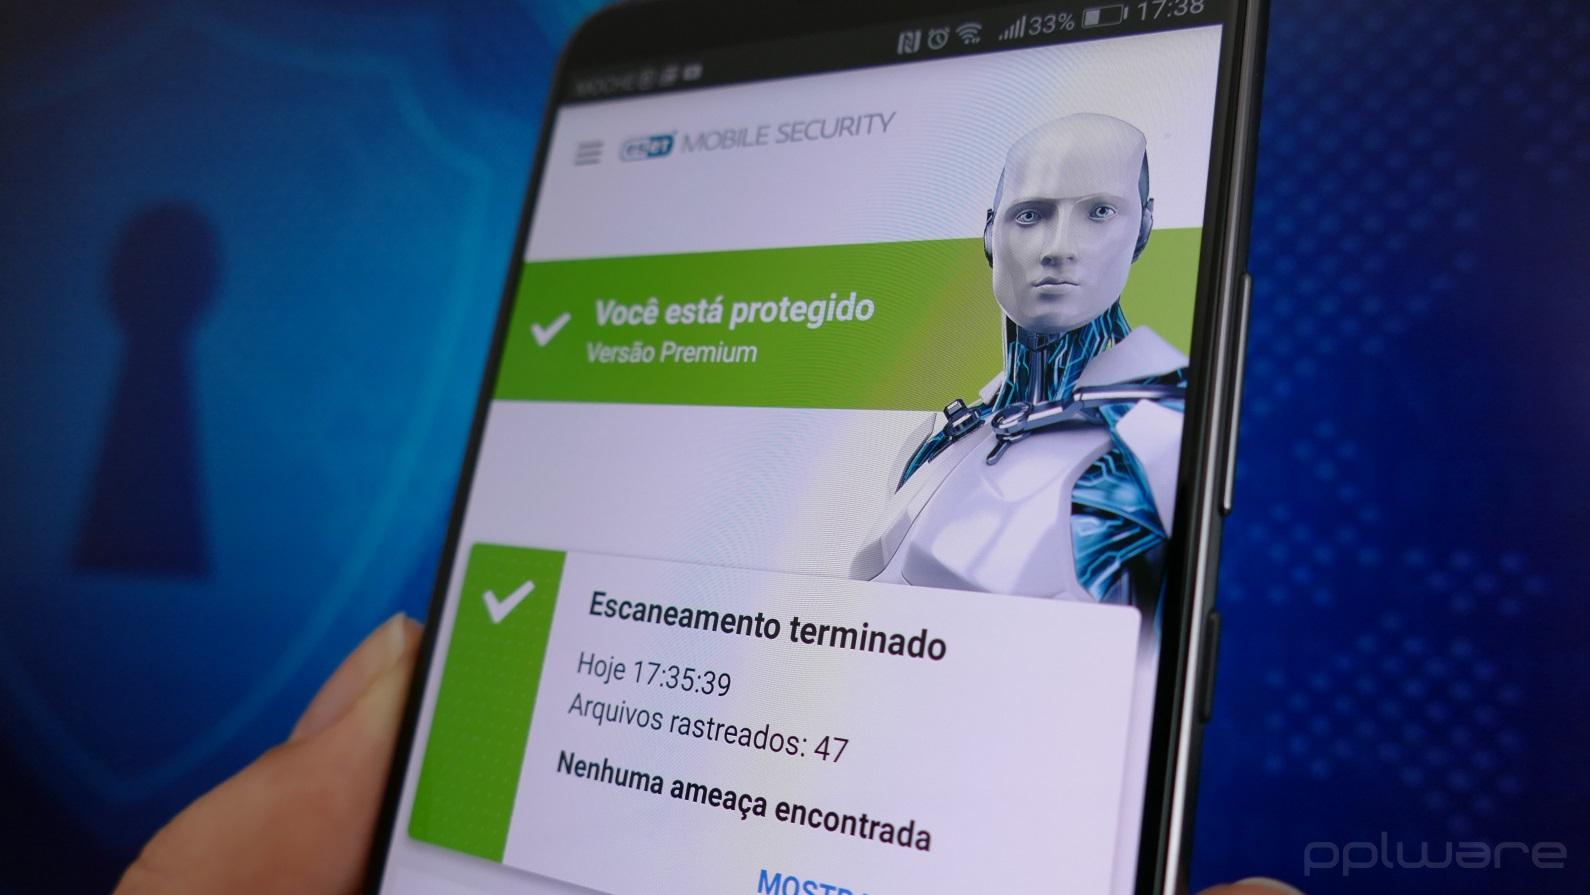 ESET Mobile Security – more than an antivirus for your Android